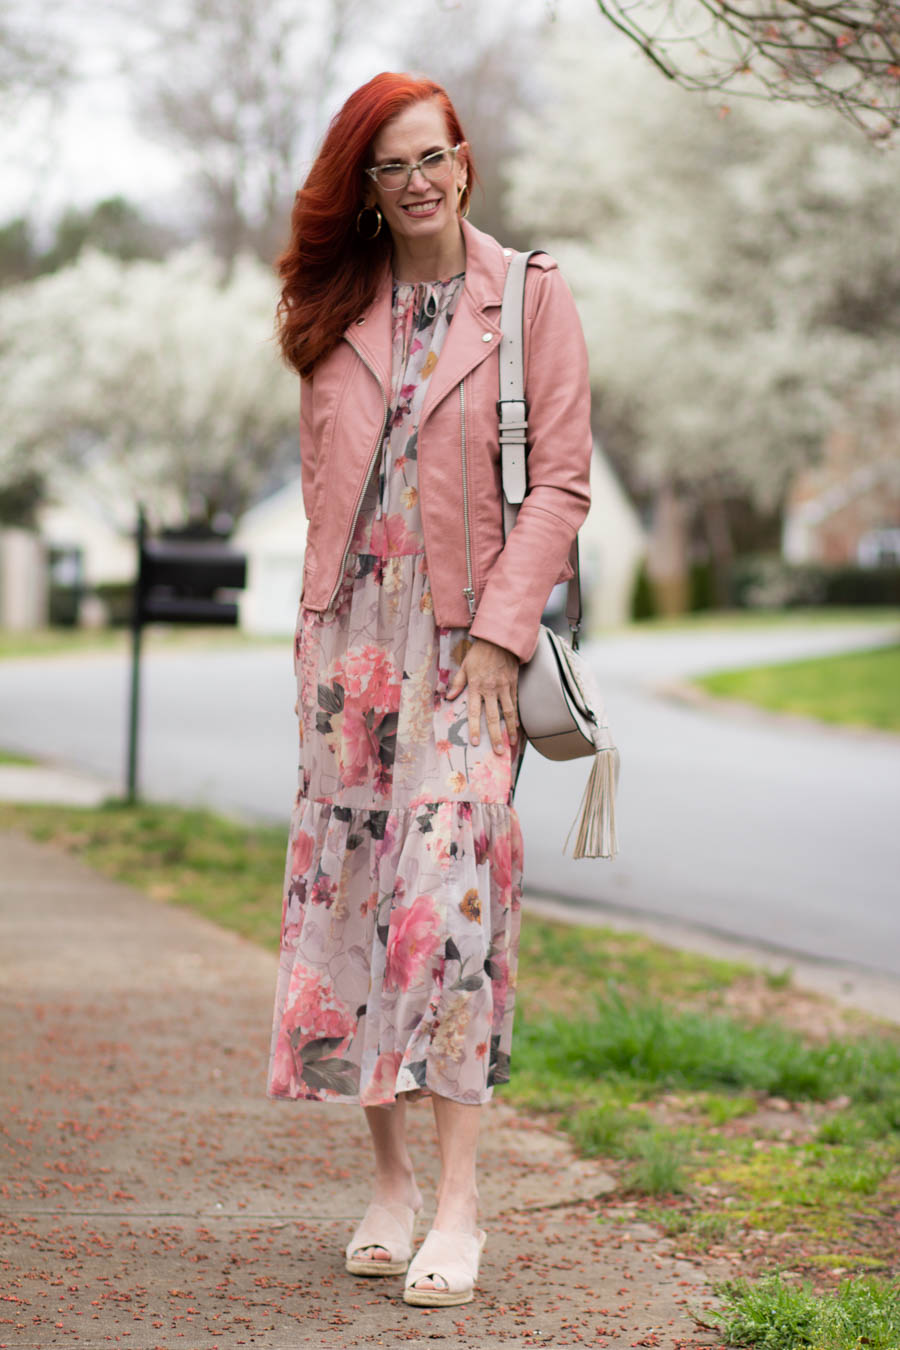 Floral midi dress with pink moto jacket